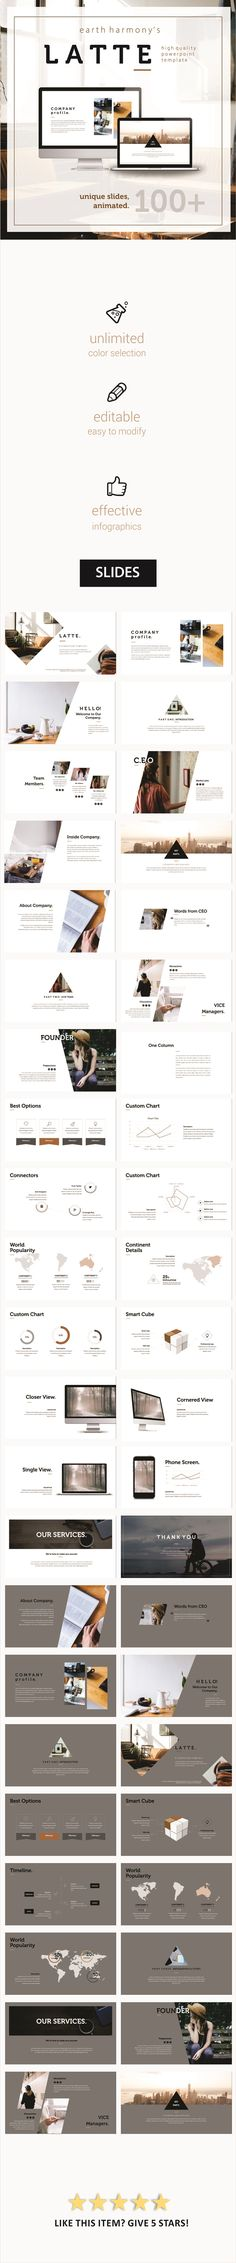 Blood Donation Powerpoint Templates Blood Donation Blood And